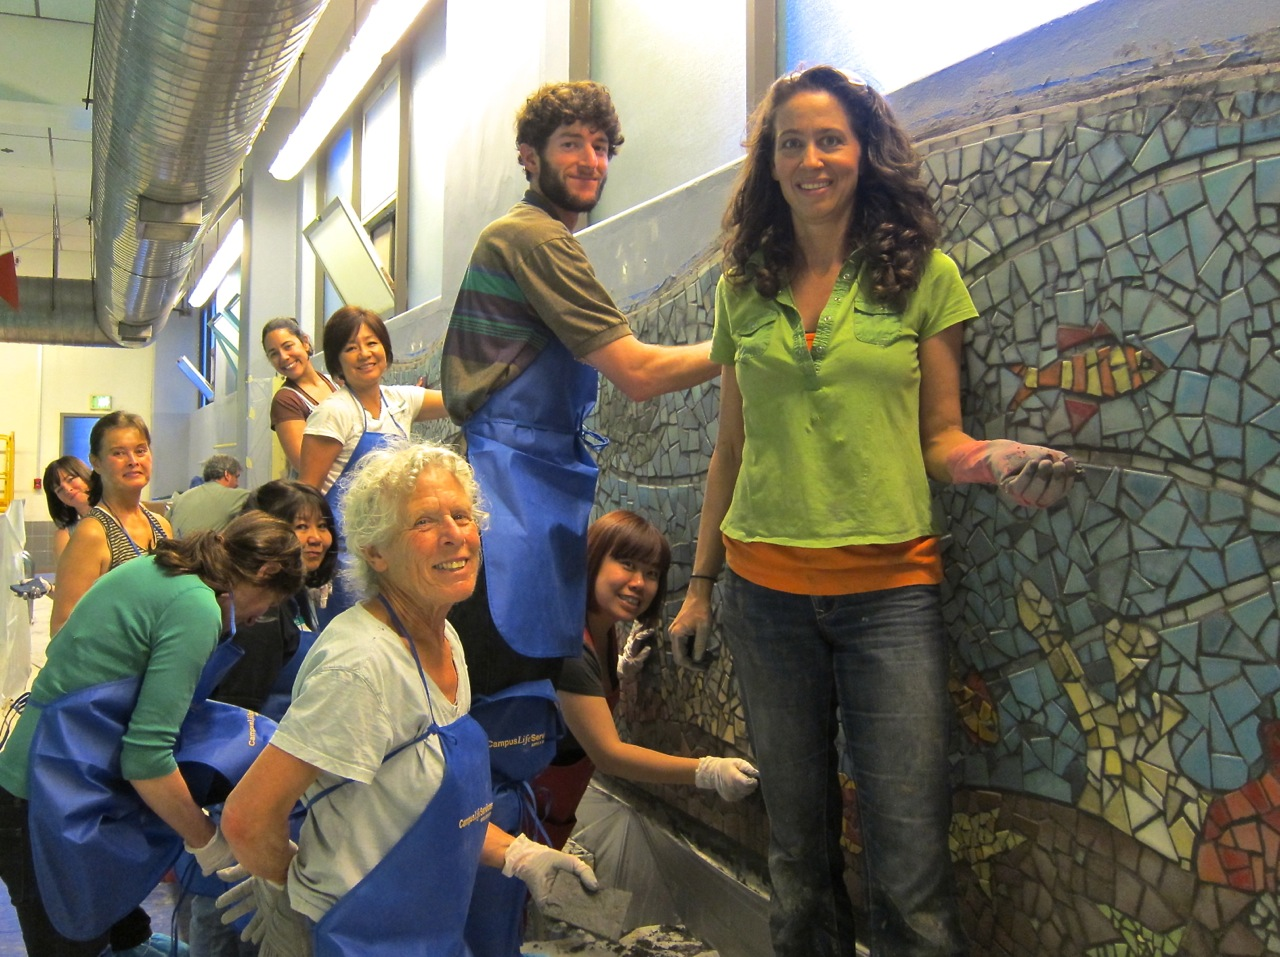 Grouting at UCSF Medical Center's pool. Project led by Rachel Rodi